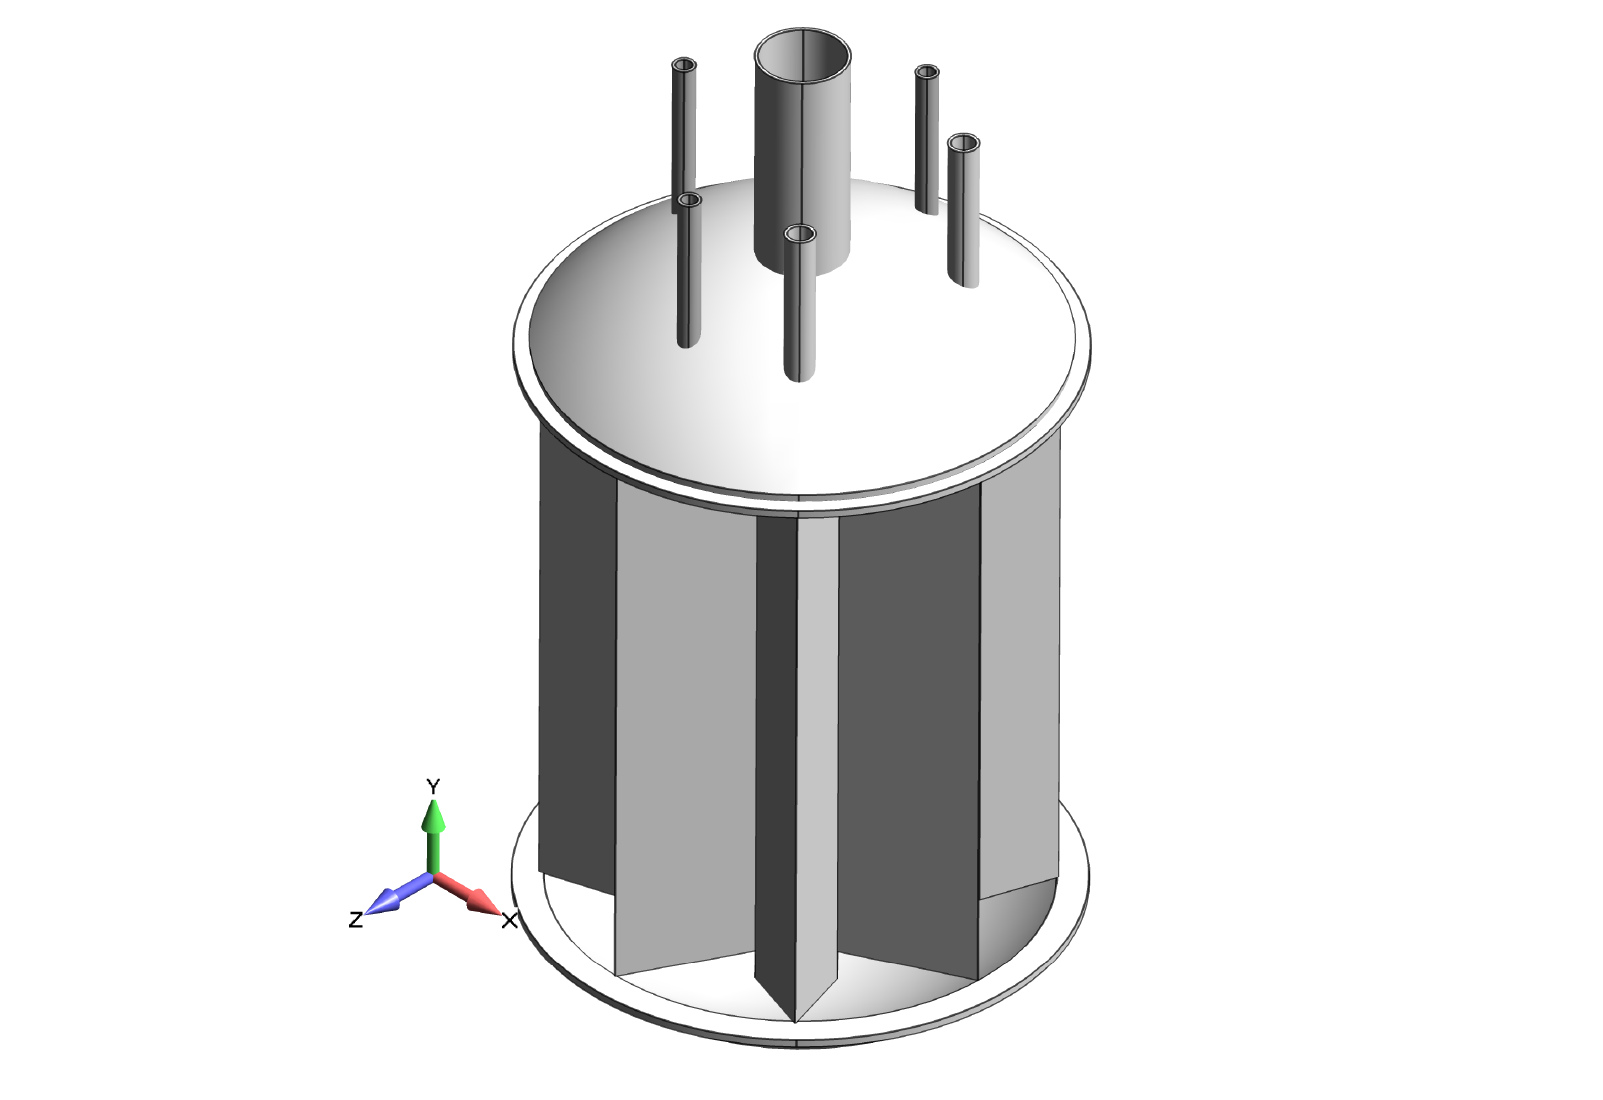 Figure 1: Original cryogenic ASME pressure vessel CAD geometry.